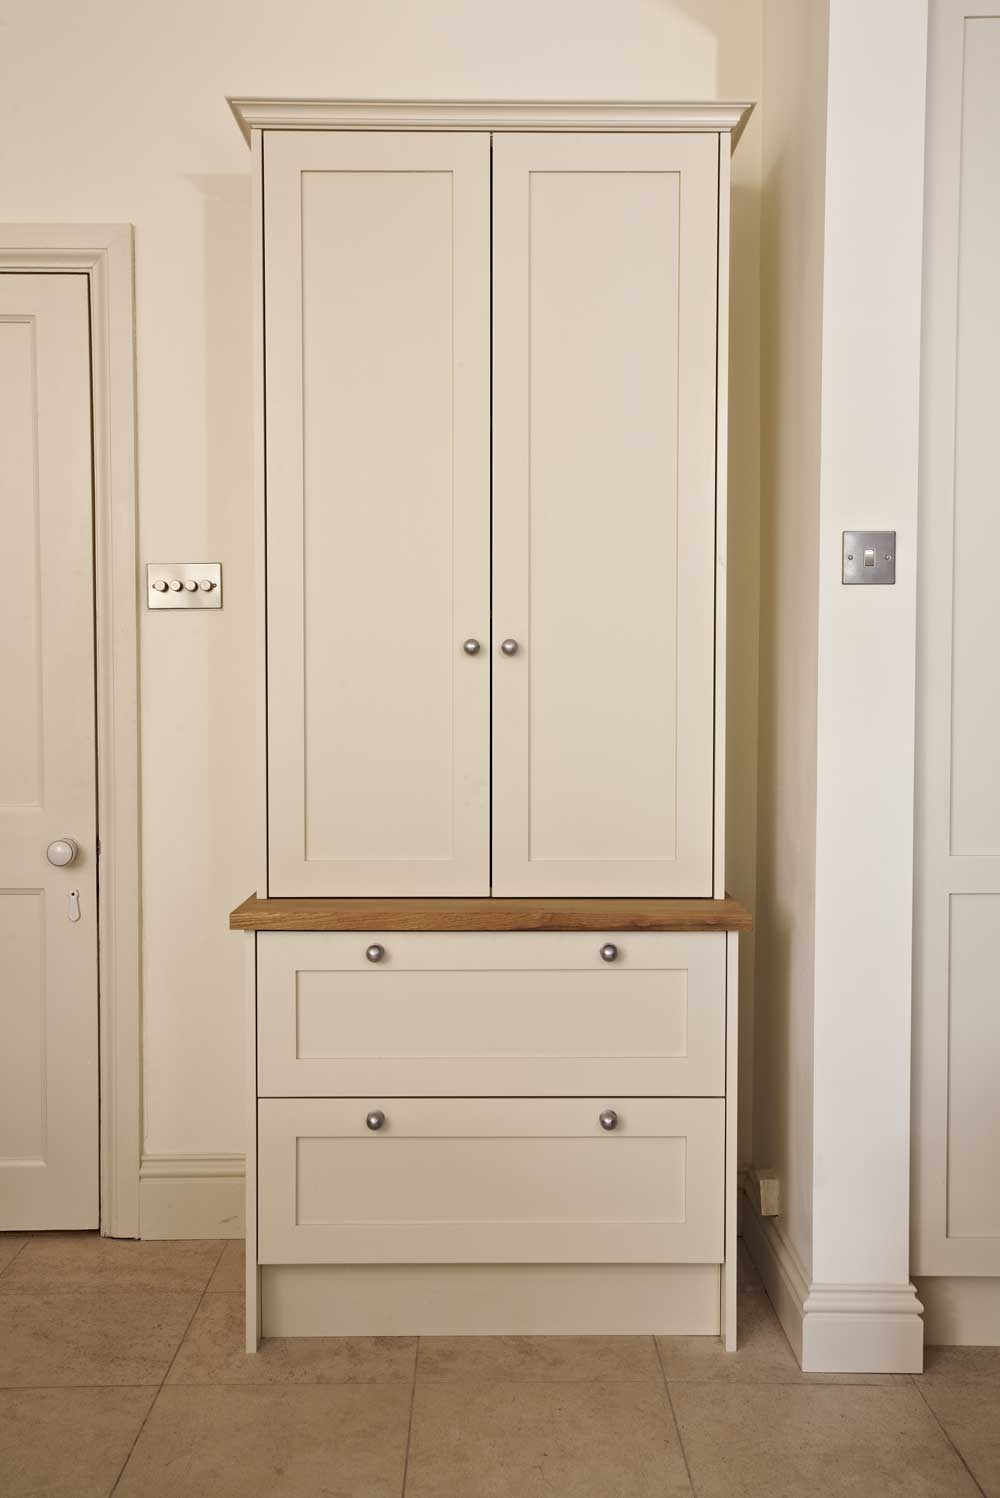 Bespoke family kitchen - cream standalone kitchen drawer unit and cupboard